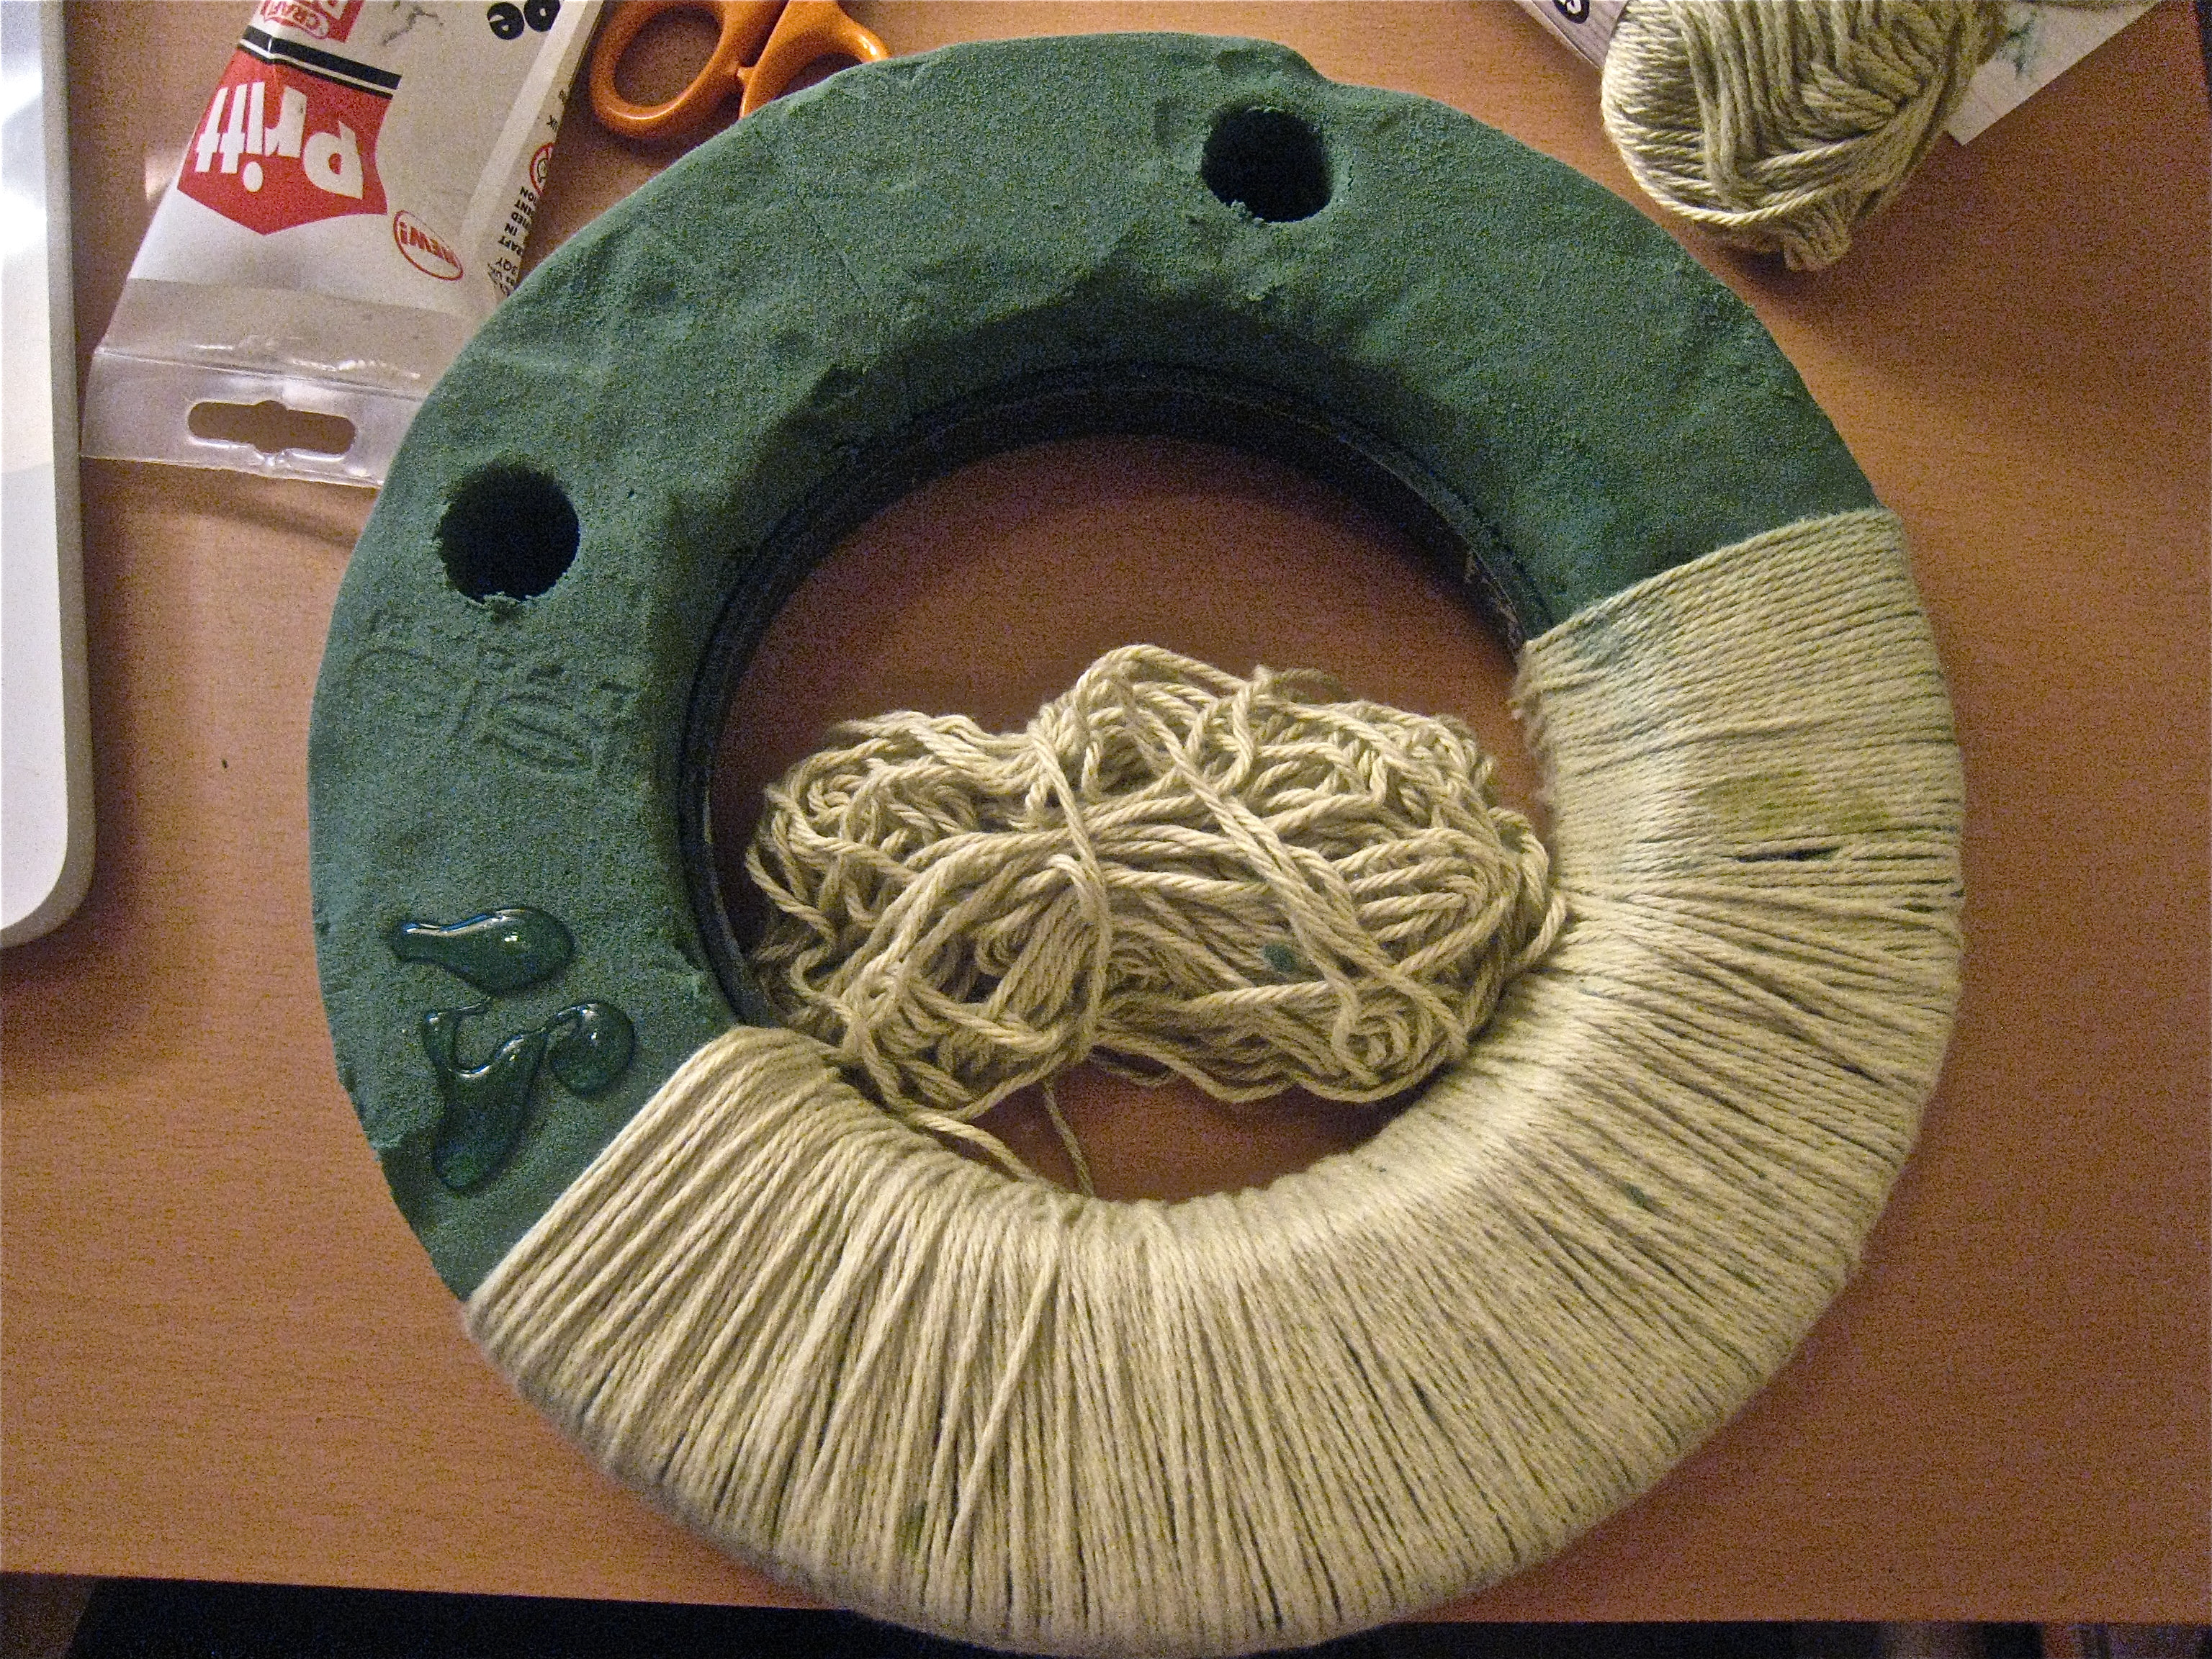 of the yarn-wrapped advent wreath | part of the main